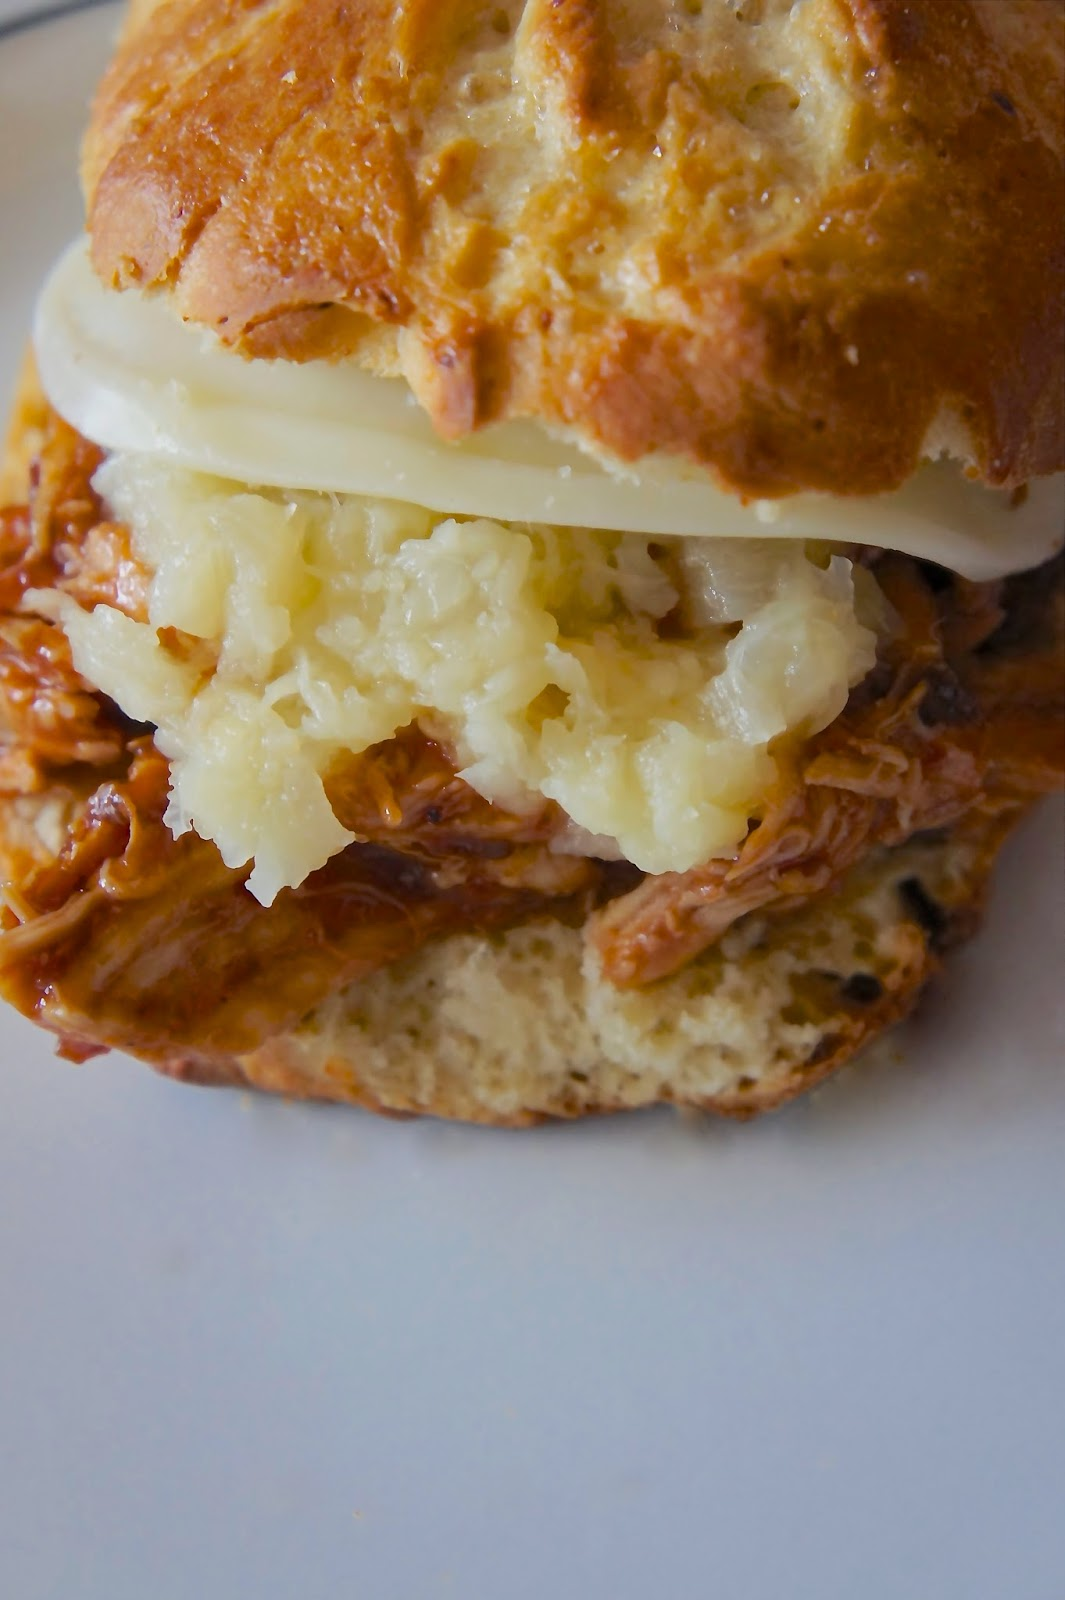 Chipotle Barbecue Chicken Sandwiches: Savory Sweet and Satisfying